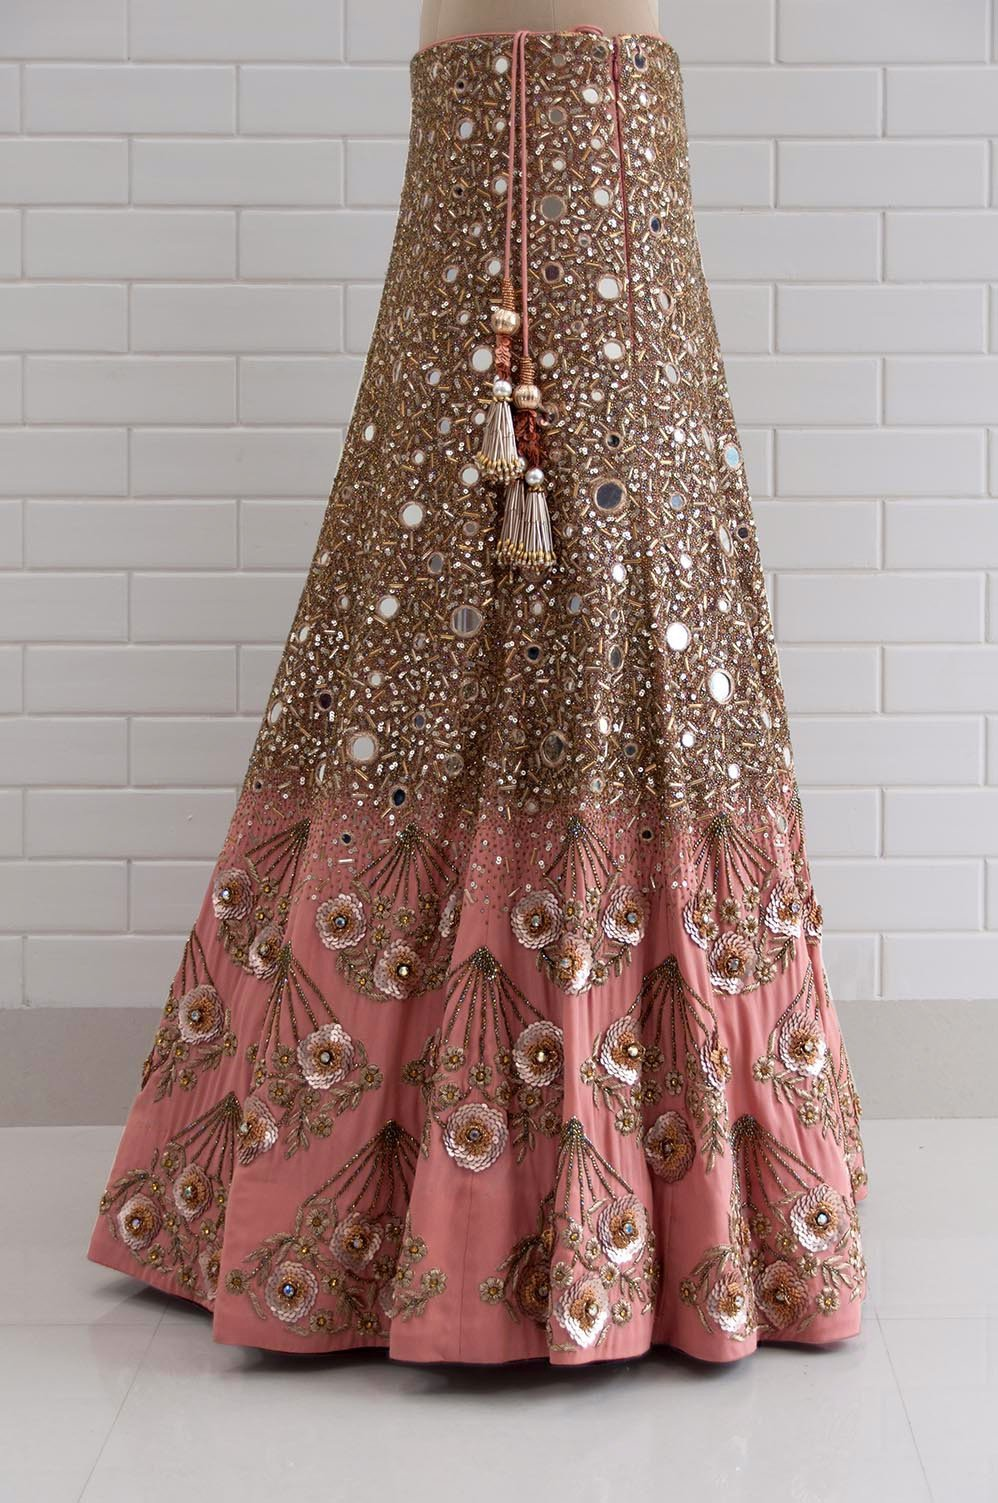 Canyon Clay Drape Sleeves with Jaal embroidery Blouse and Lehenga